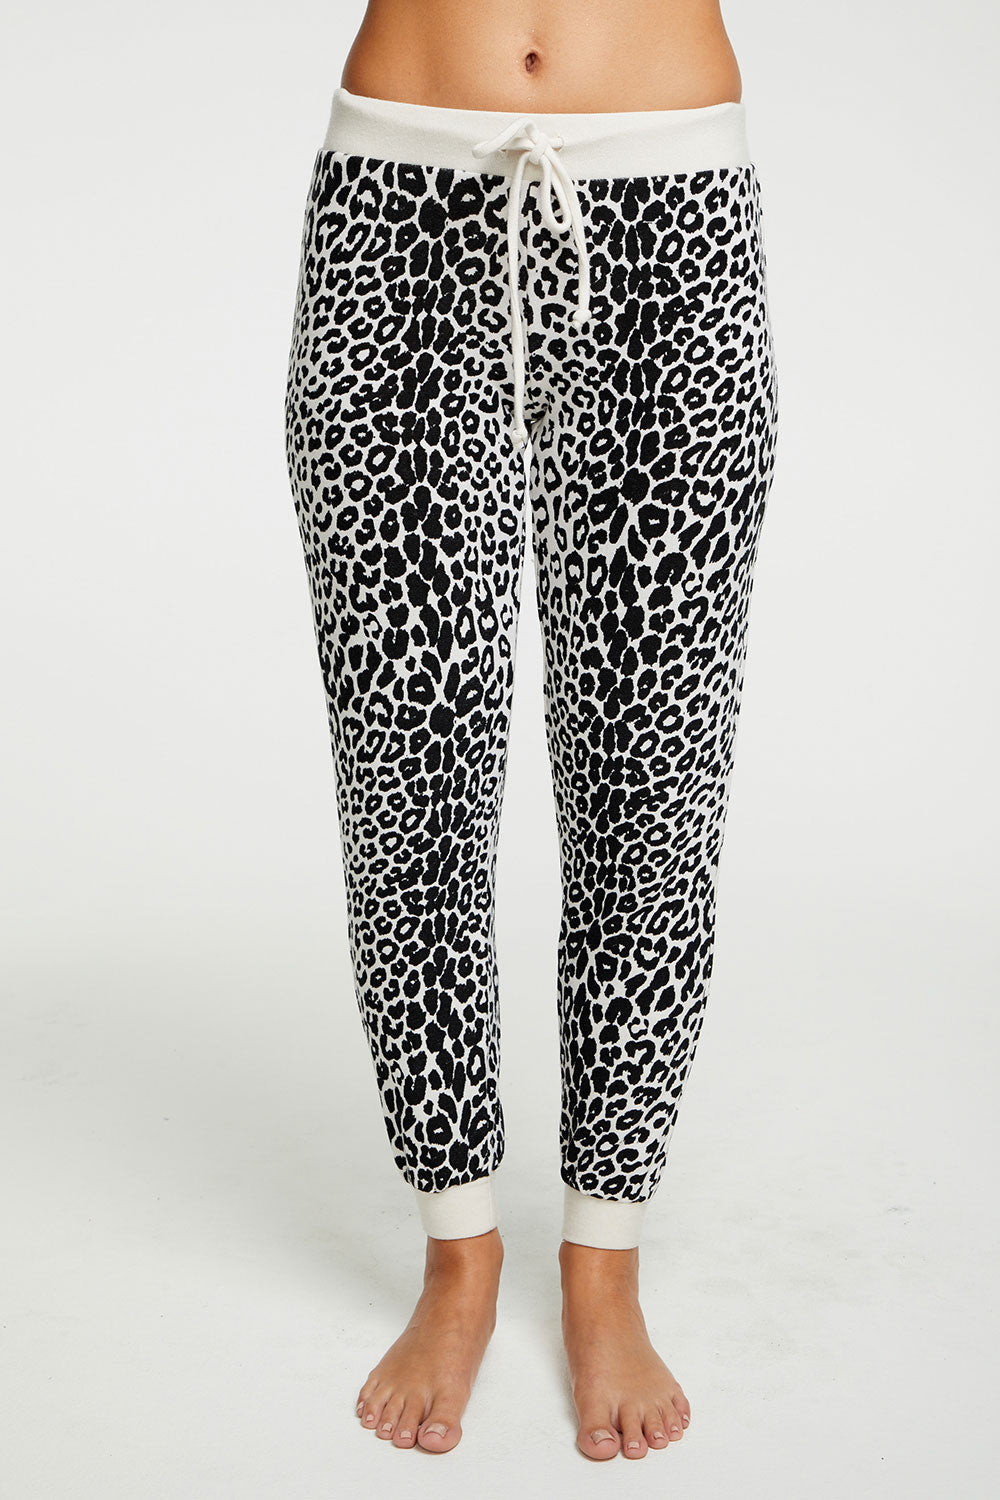 Animal Print Sweatpant, WOMENS, chaserbrand.com,chaser clothing,chaser apparel,chaser los angeles